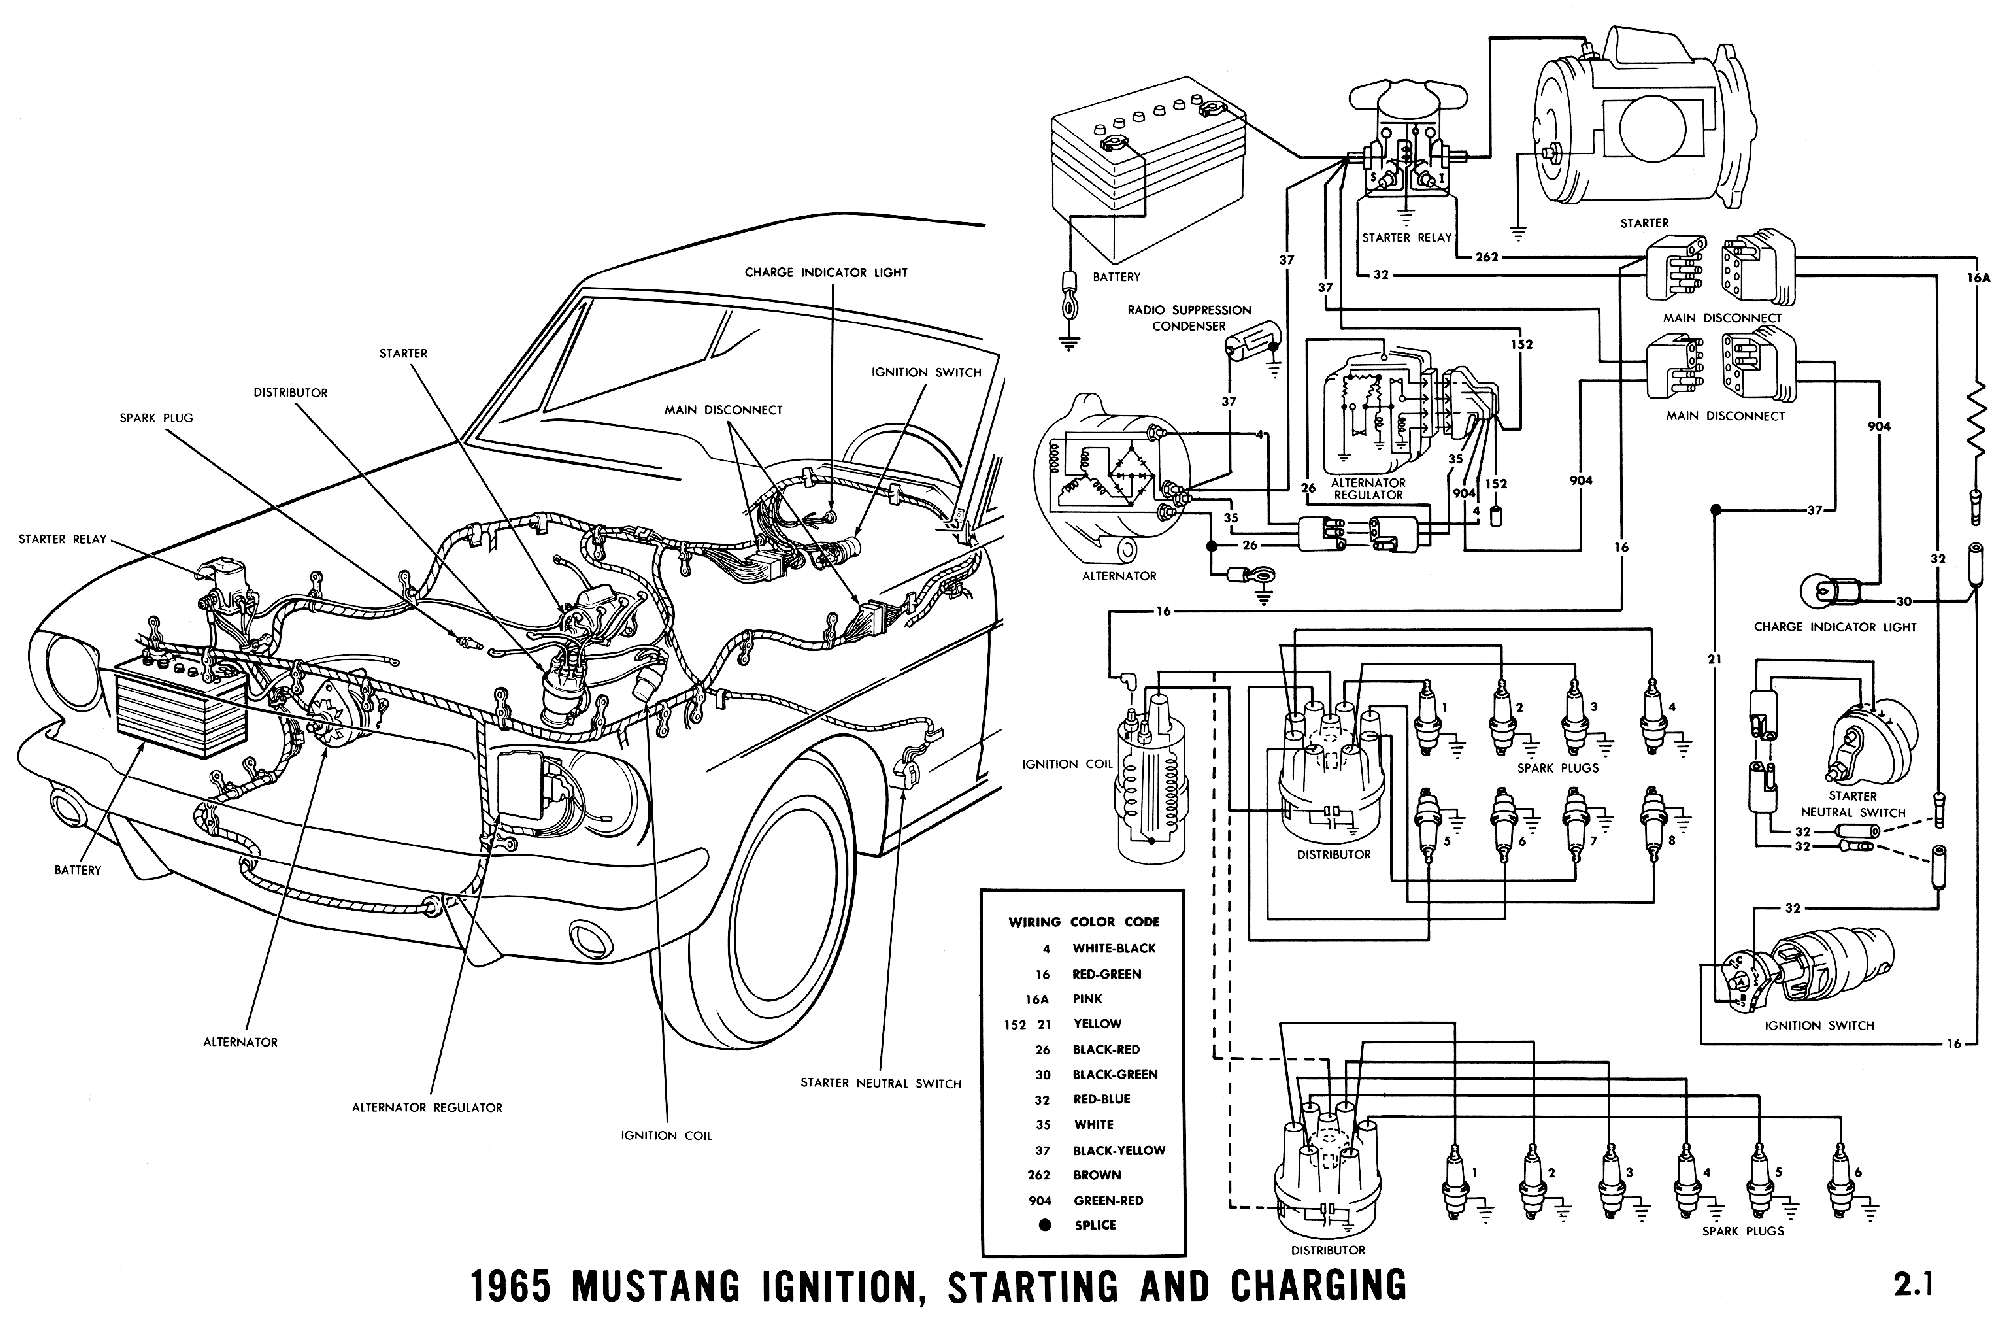 1966 Mustang Alternator Wiring Diagram Vacuum Tube Audio Amplifier Circuit Tradeoficcom 1965 Diagrams Average Joe Restoration Rh Averagejoerestoration Com